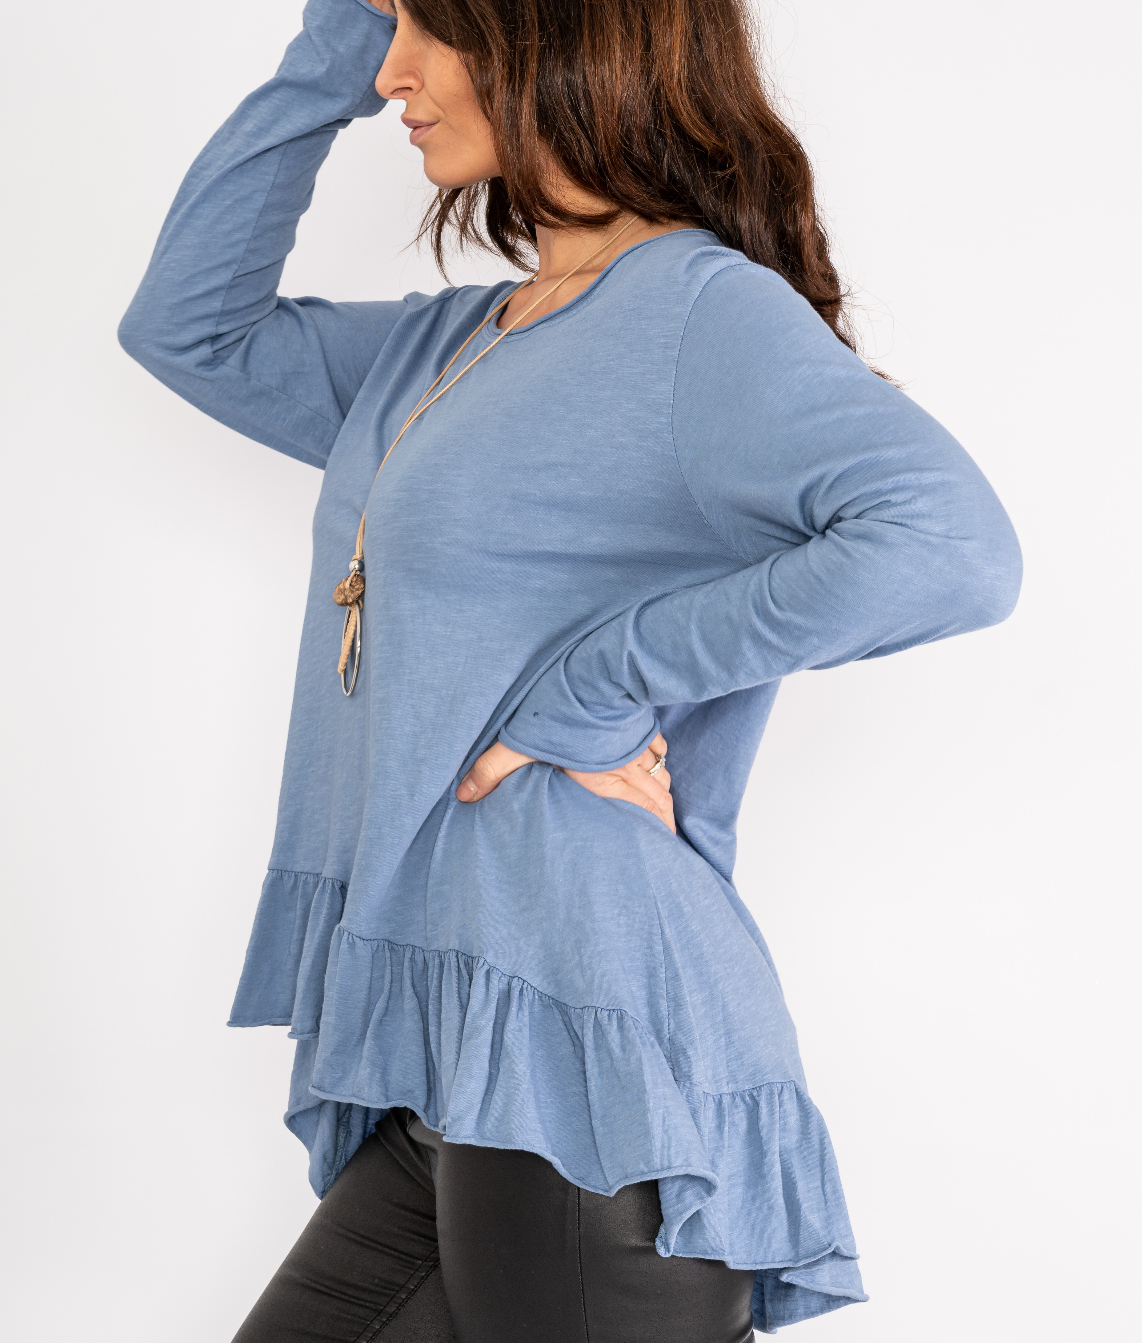 Ruffle trim top with necklace Lucy Sparks